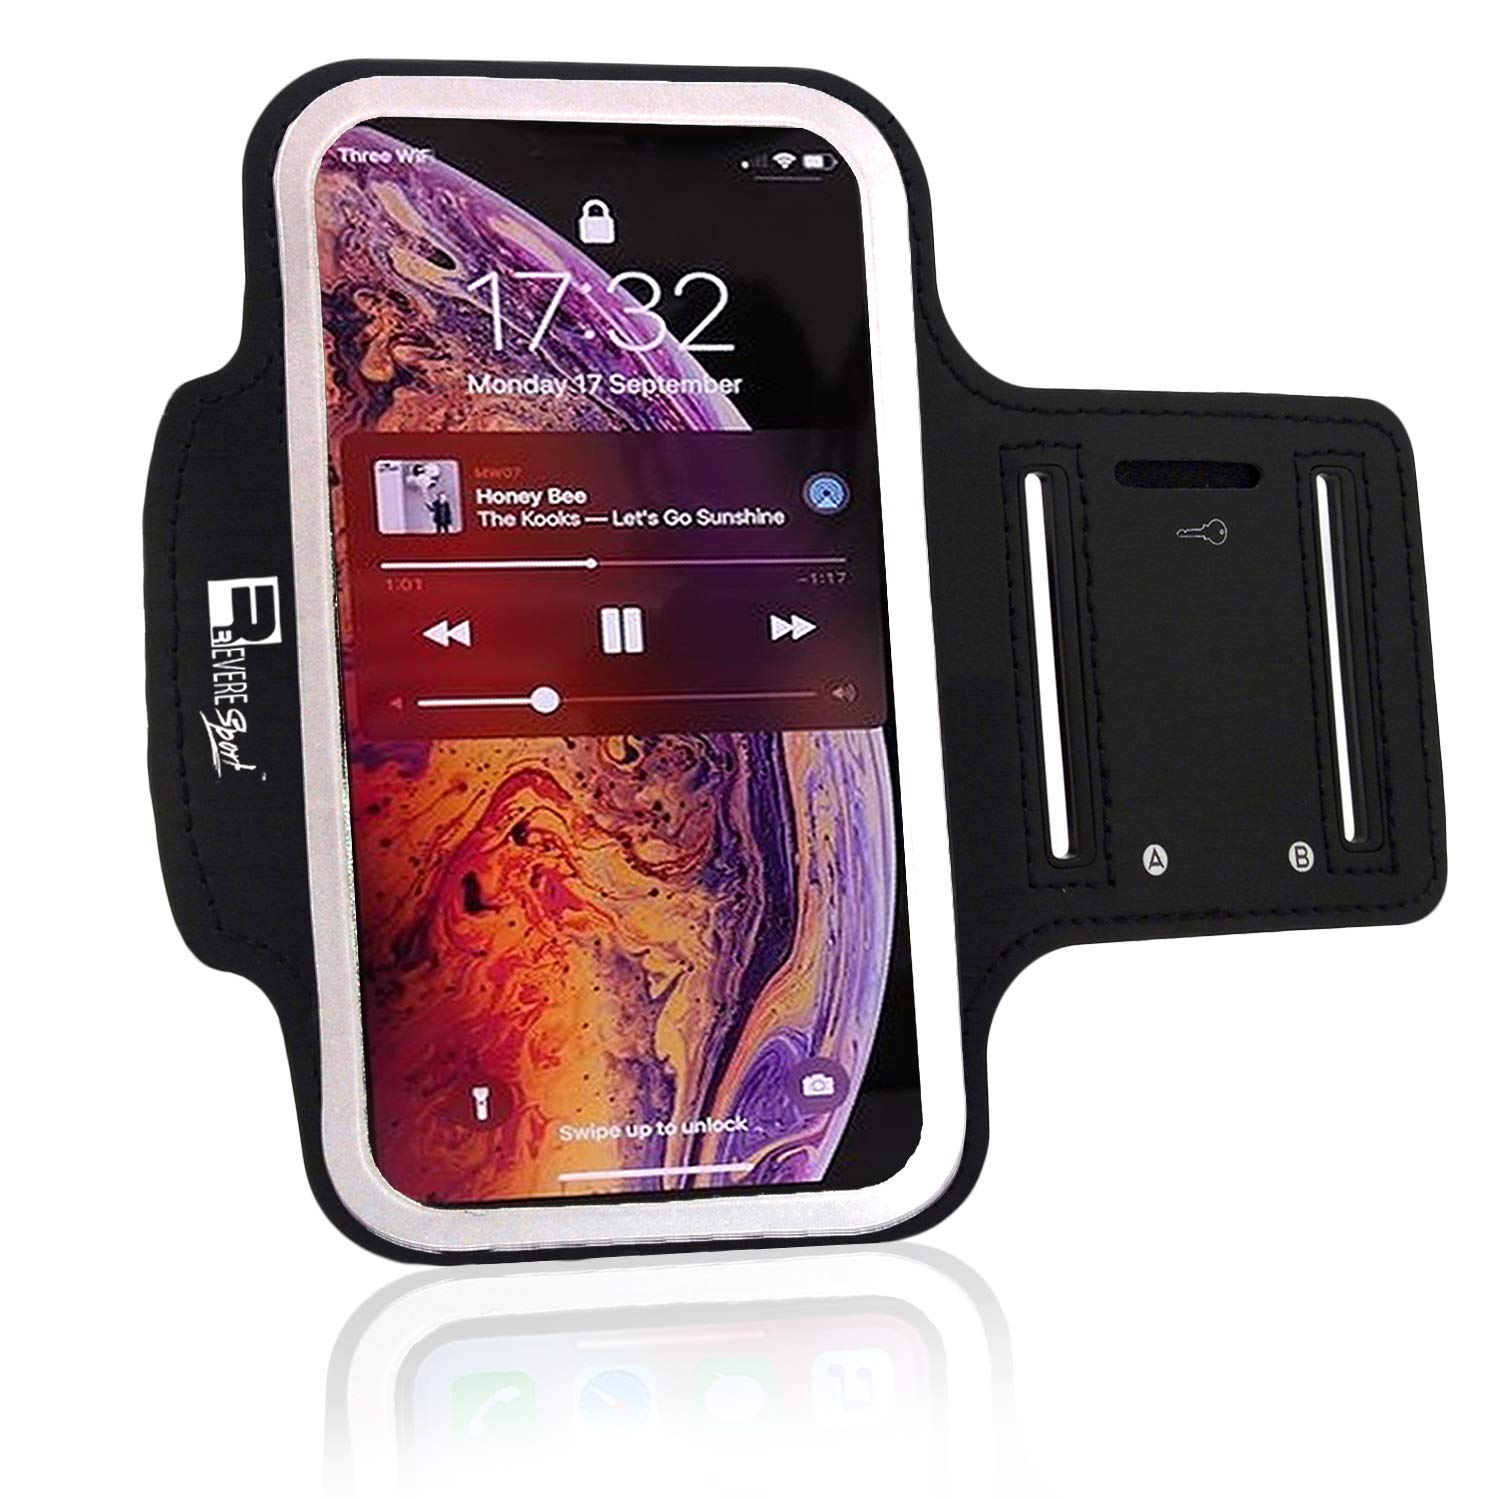 Revere Sport iPhone XR Armband. Sports Phone Case Holder for Running, Gym Workouts & Exercise by Revere Sport